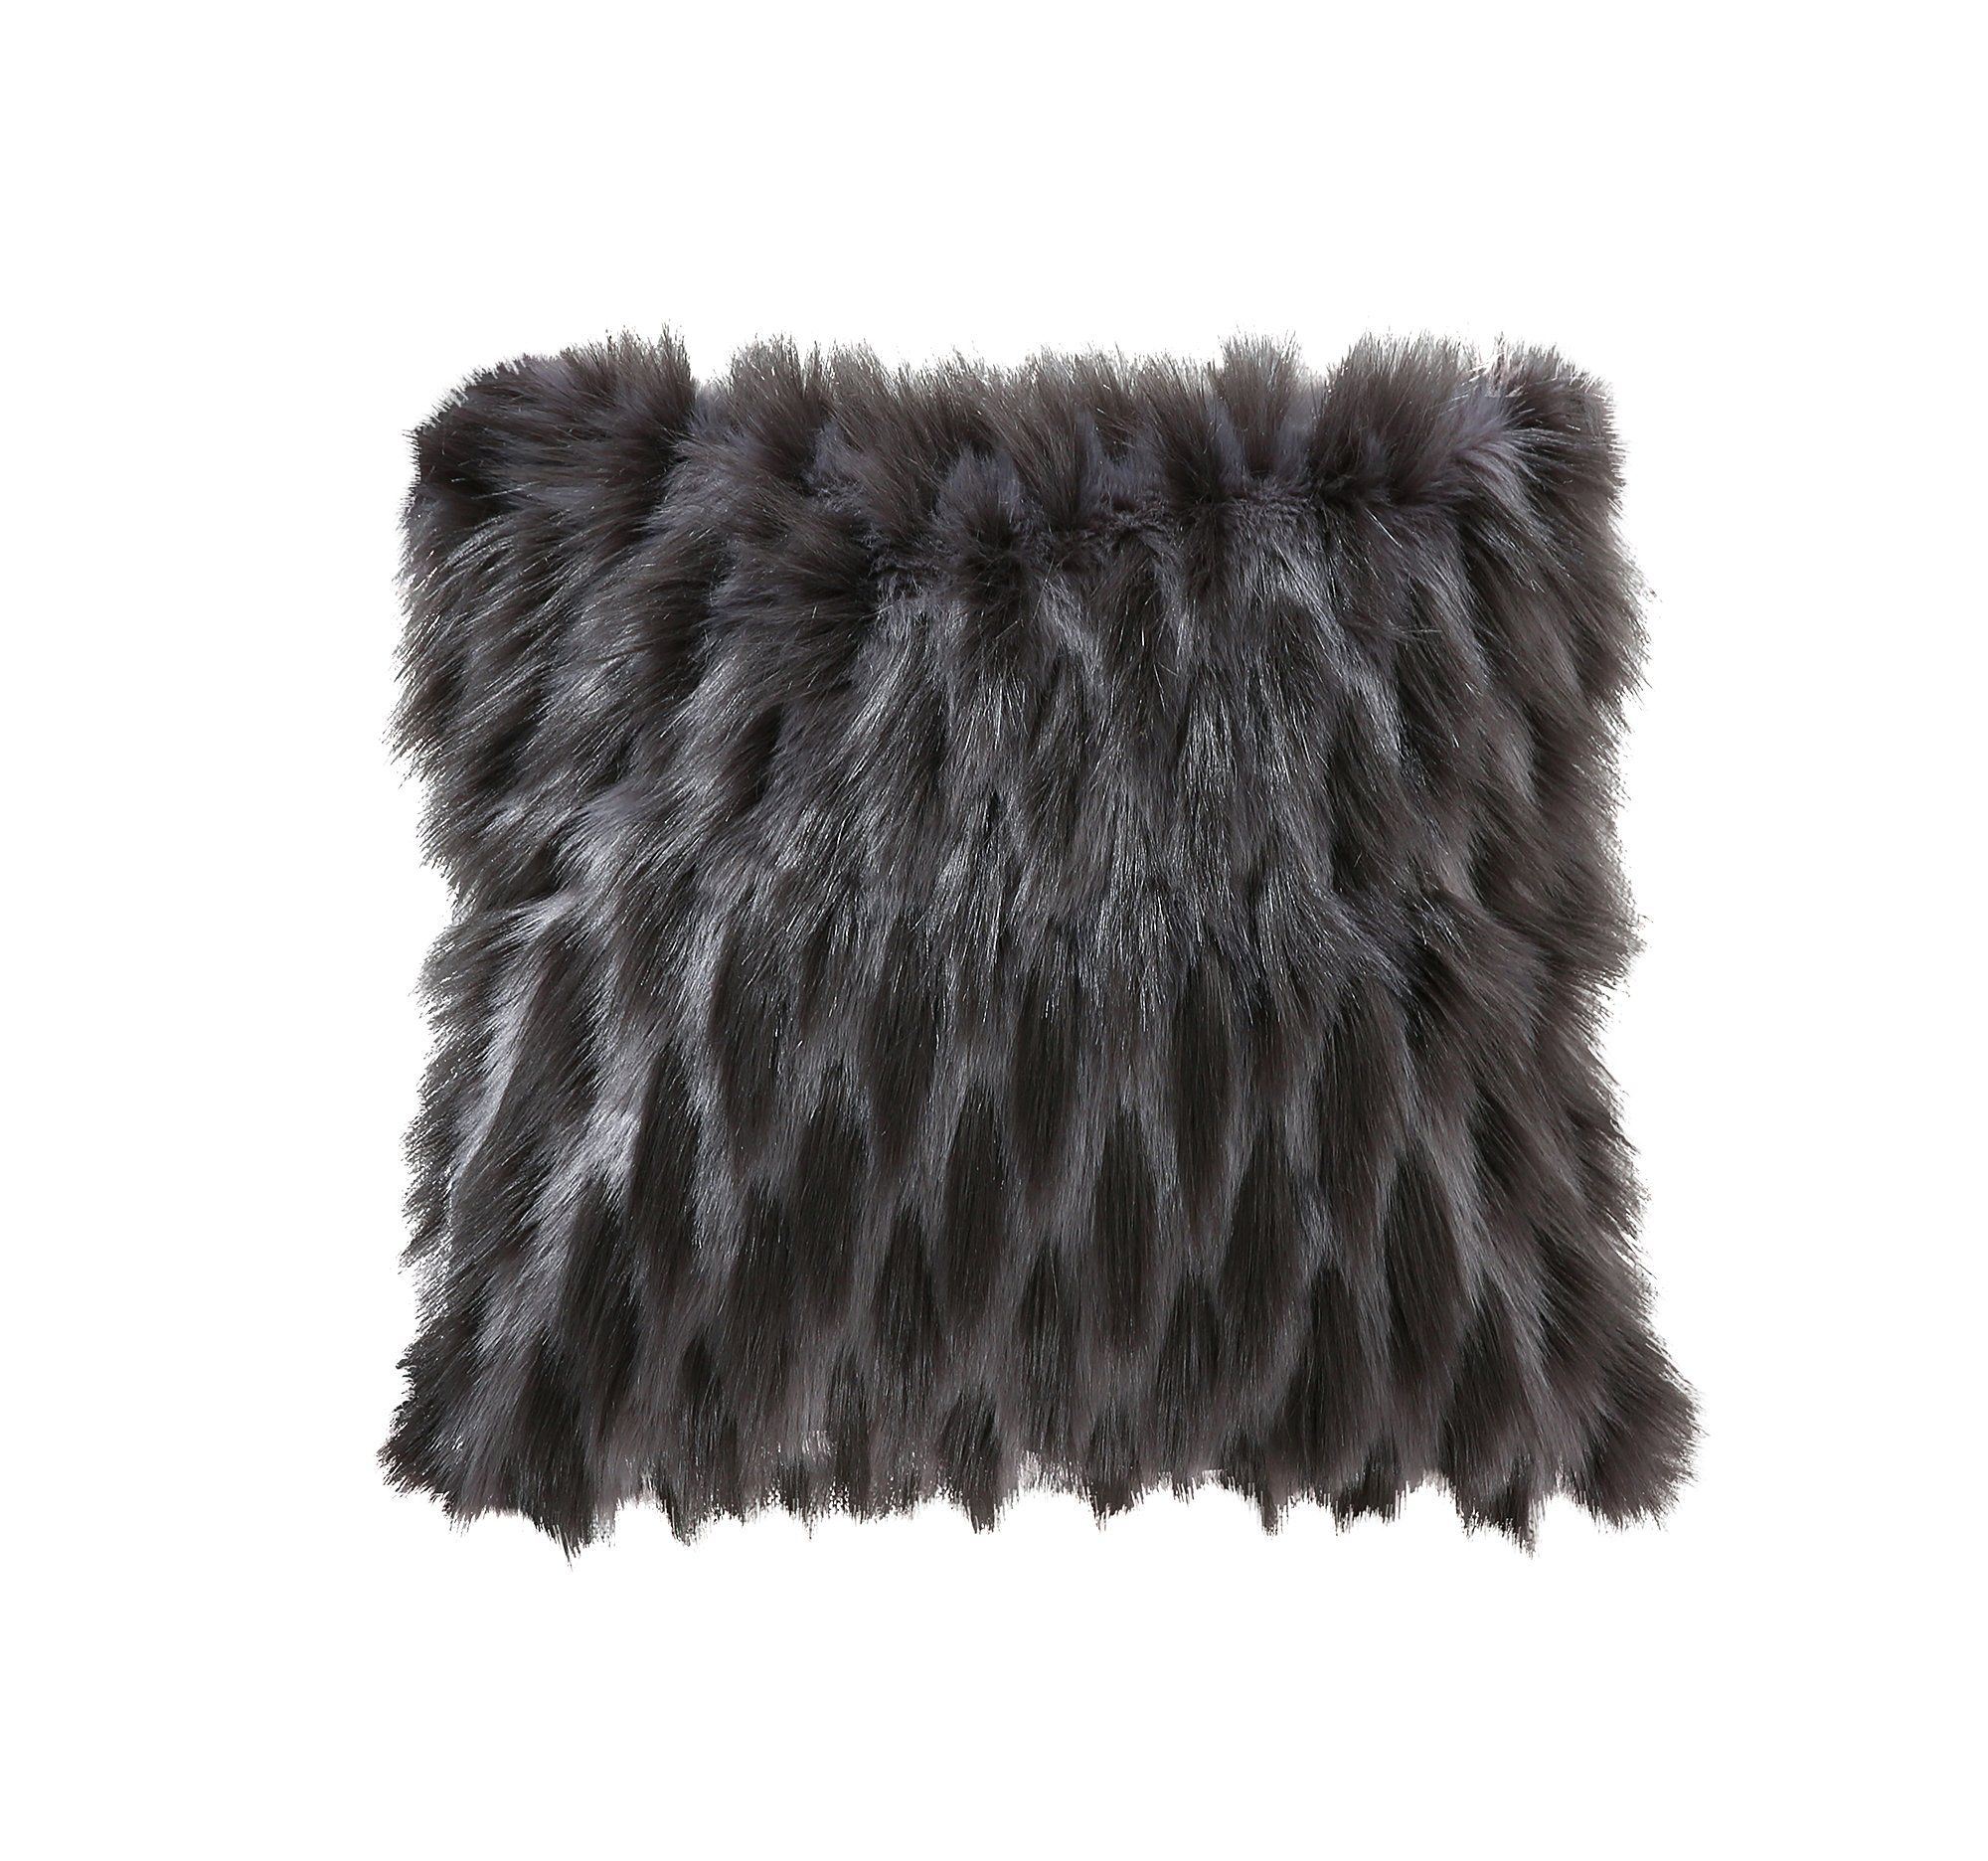 itm room mongolian pillow locqmrl grey decor living sofa case dark cushion covers home cover throw for x faux fur